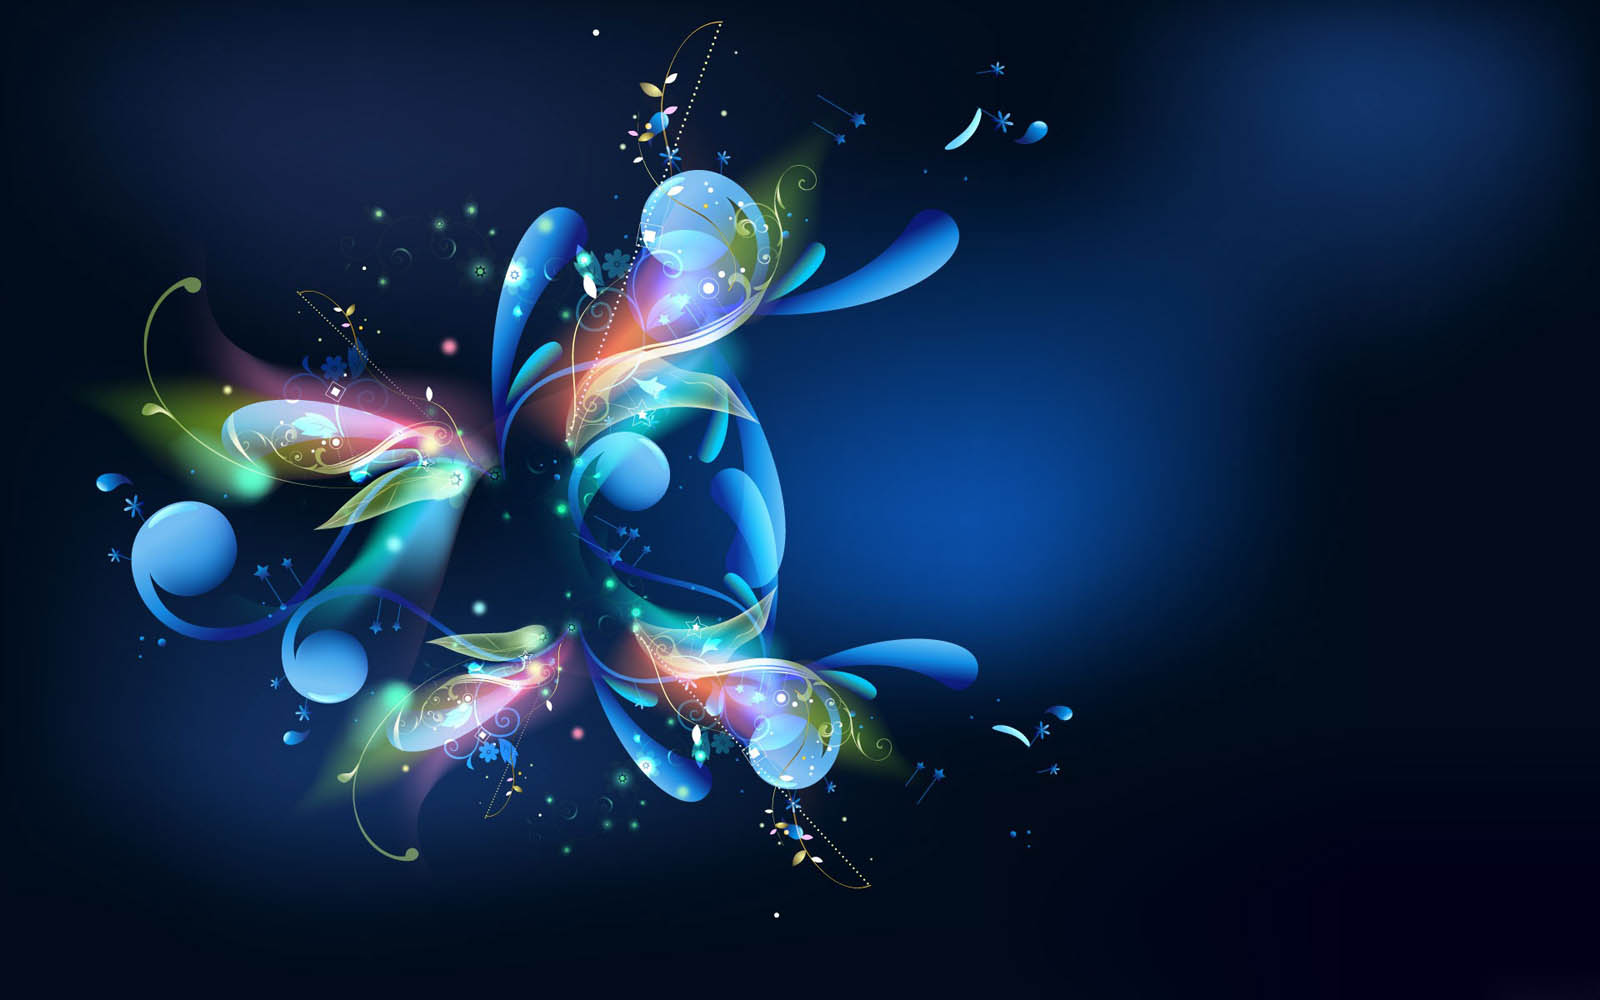 Tag Graphic Abstract Wallpapers BackgroundsPhotos Images and 1600x1000